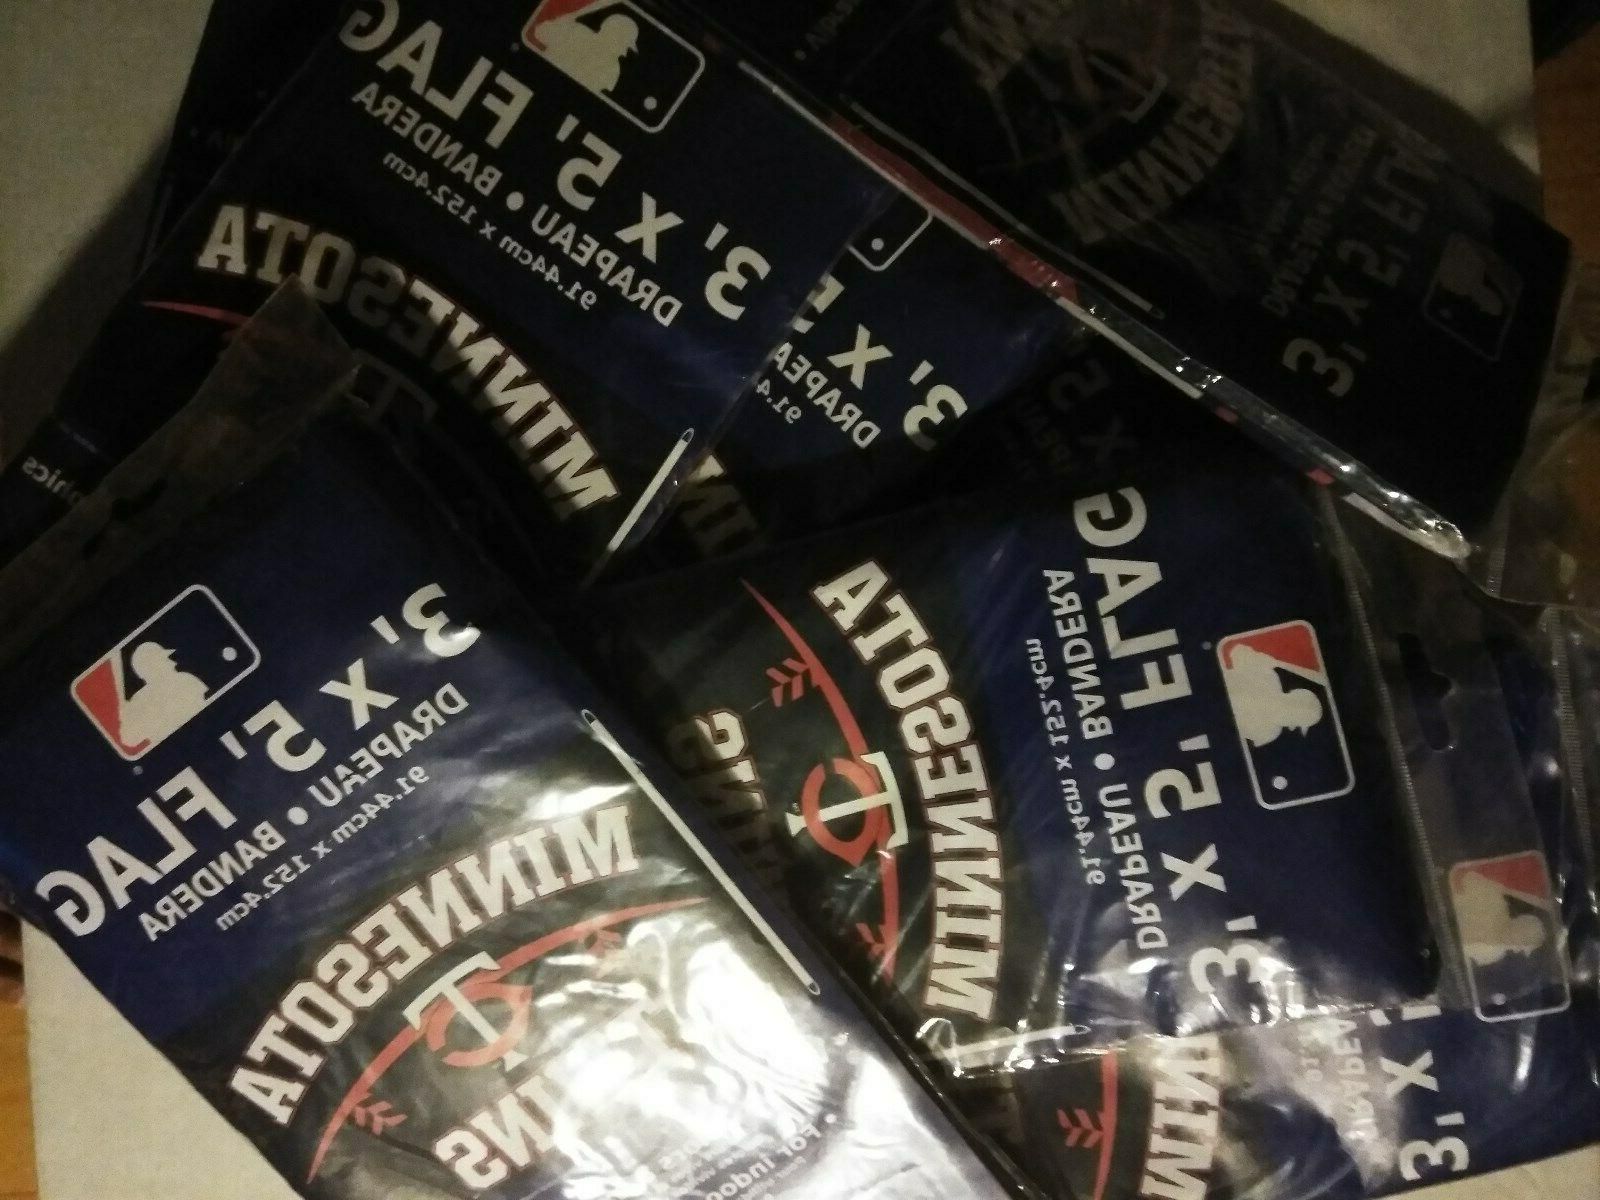 Minnesota Twins gift bags+6 +18 decals+flag 96 pencils